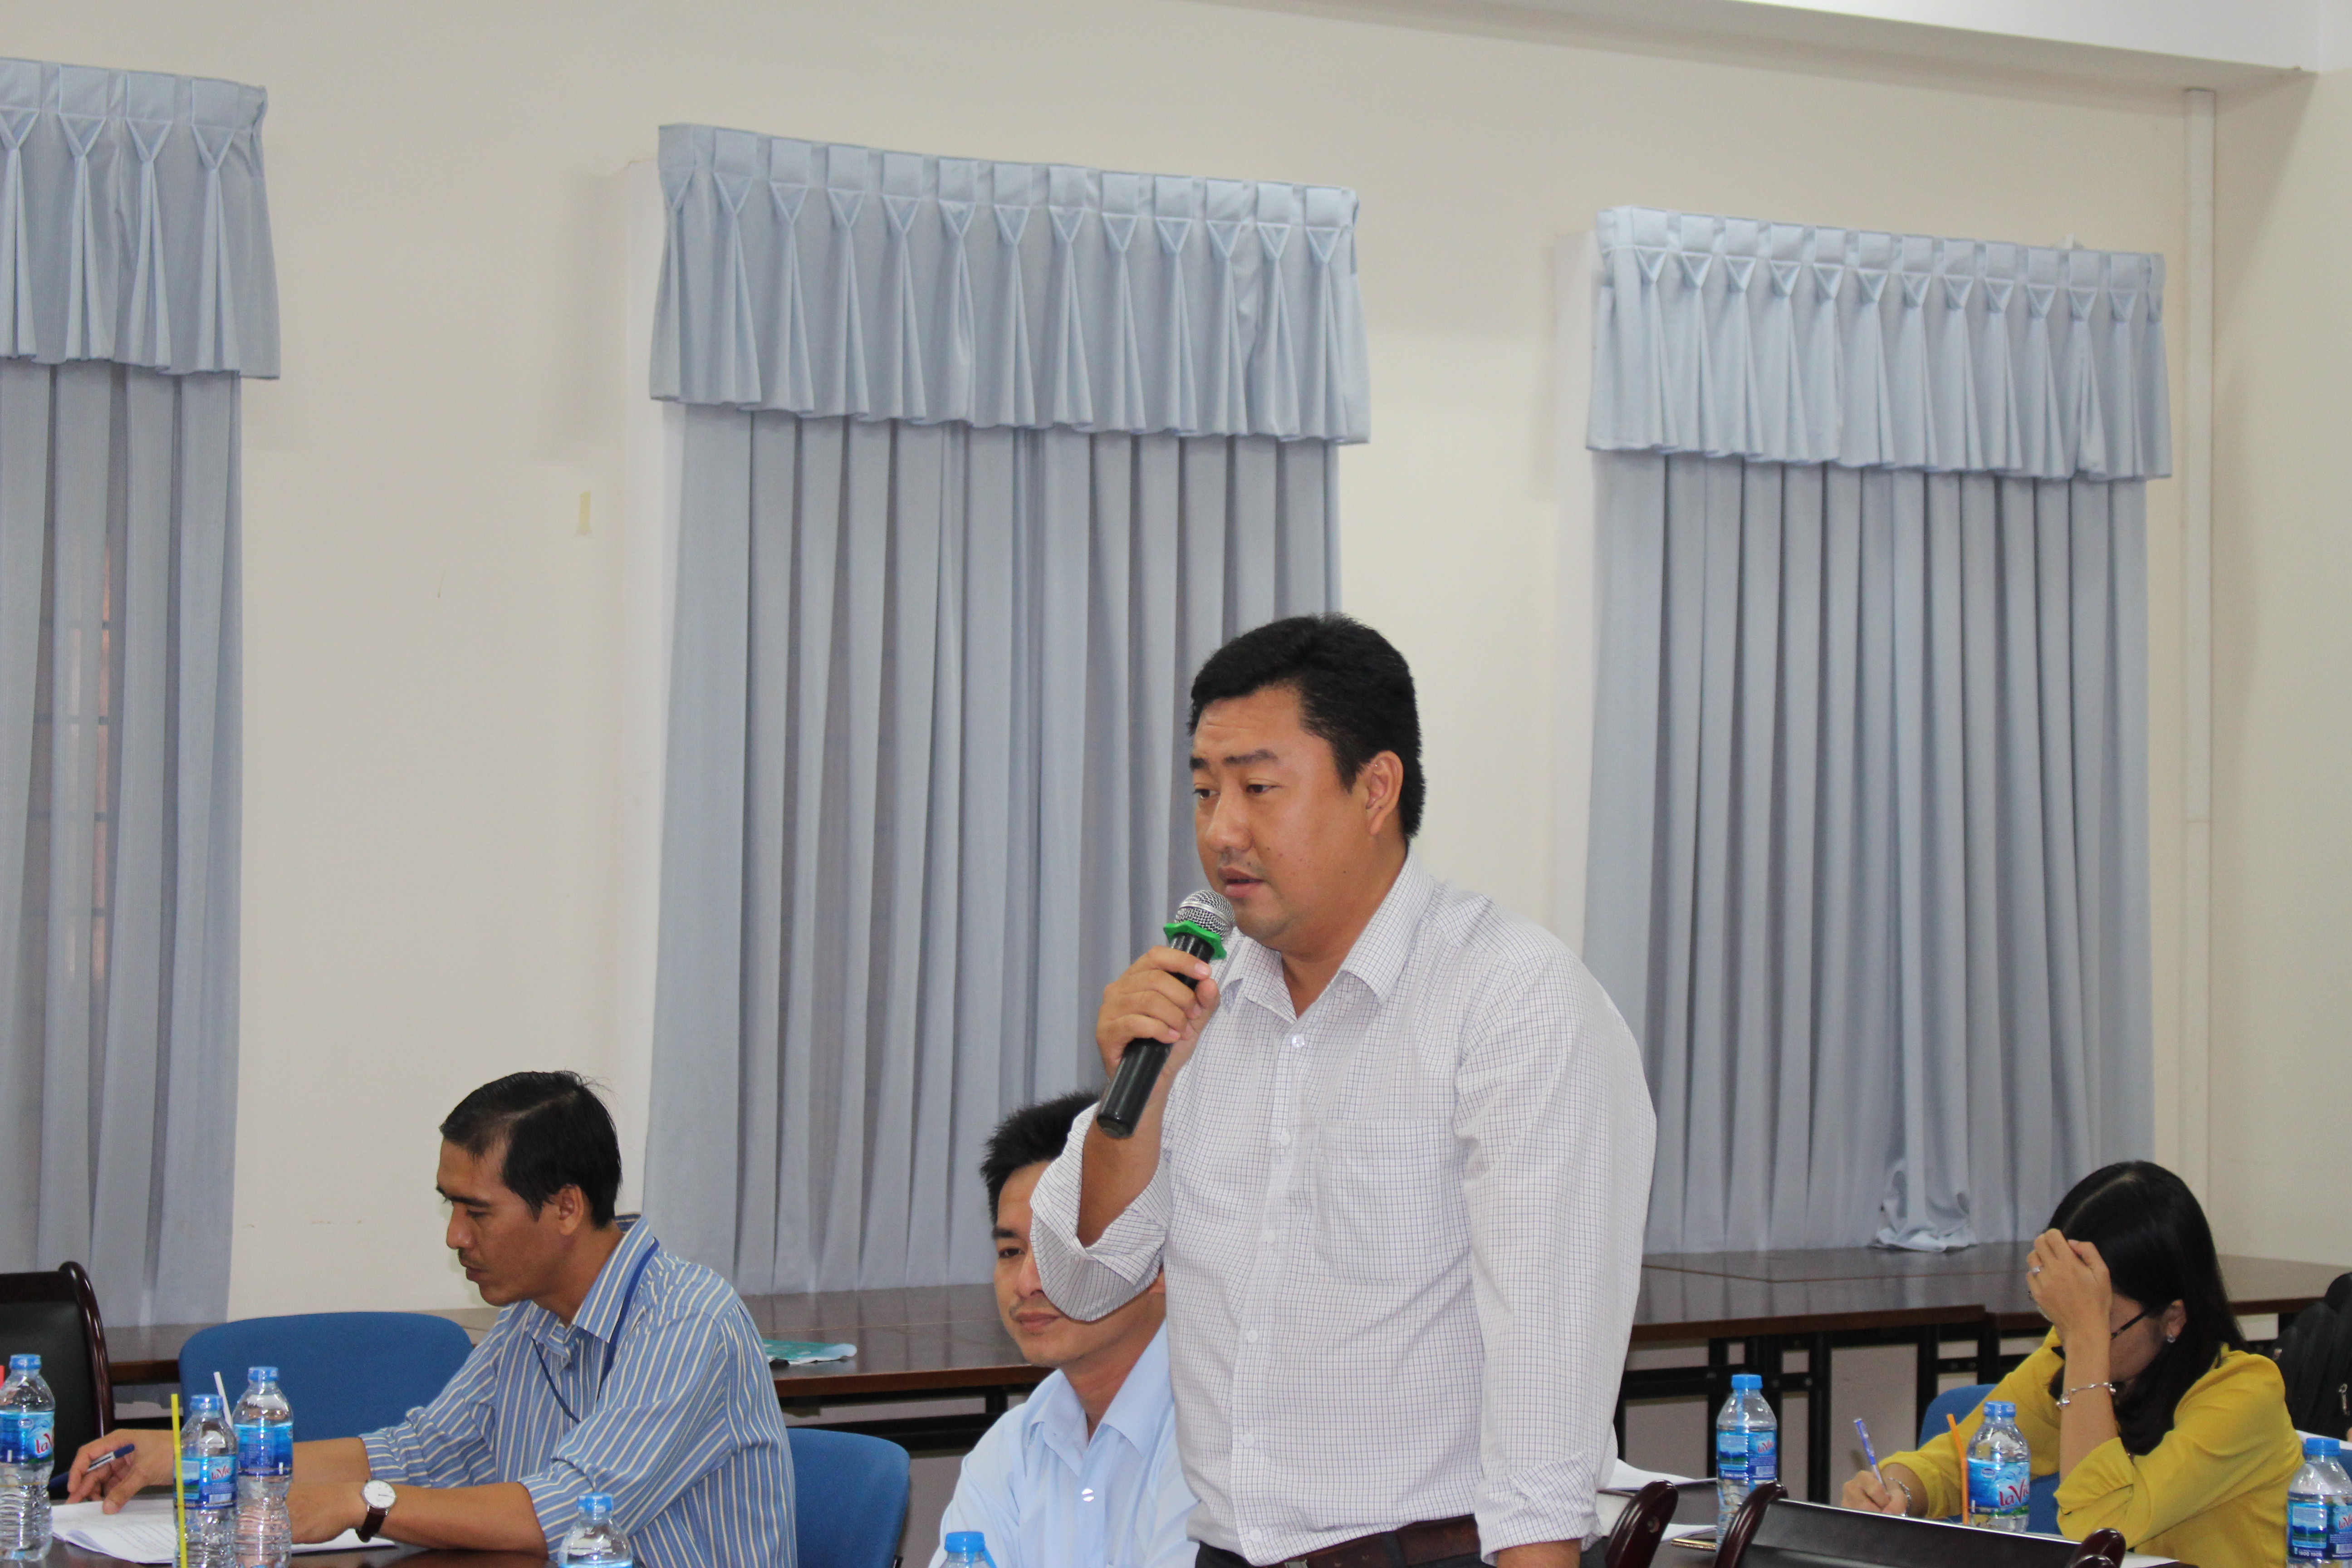 Mr. Tran Trong Nhan – Head of the Finance Office, An Giang IT Center shared his ideas at the workshop